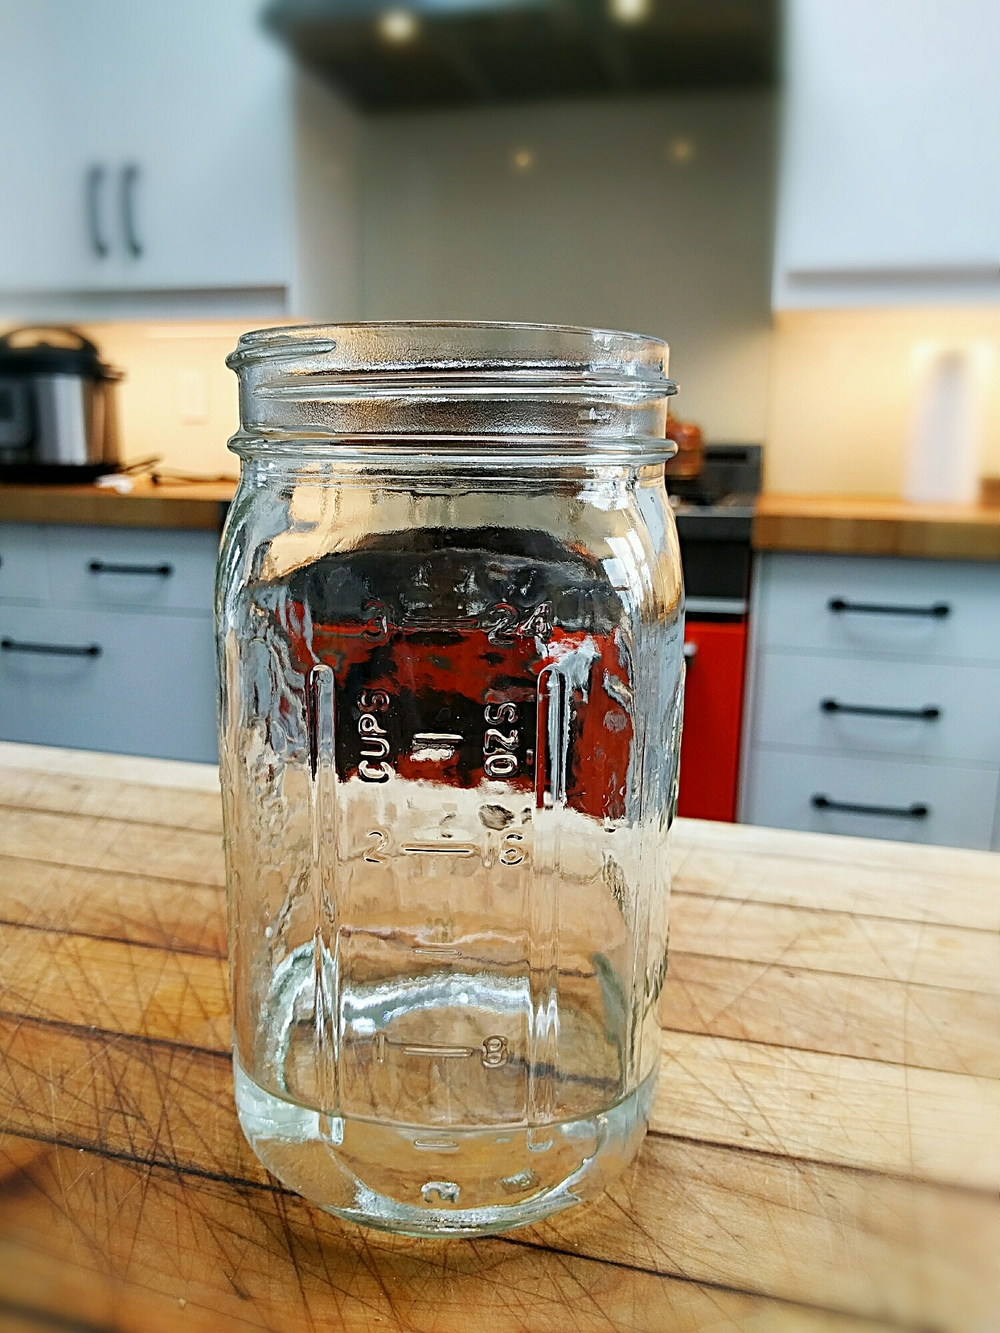 My water glass is a quart Mason jar. Four of these=one gallon.